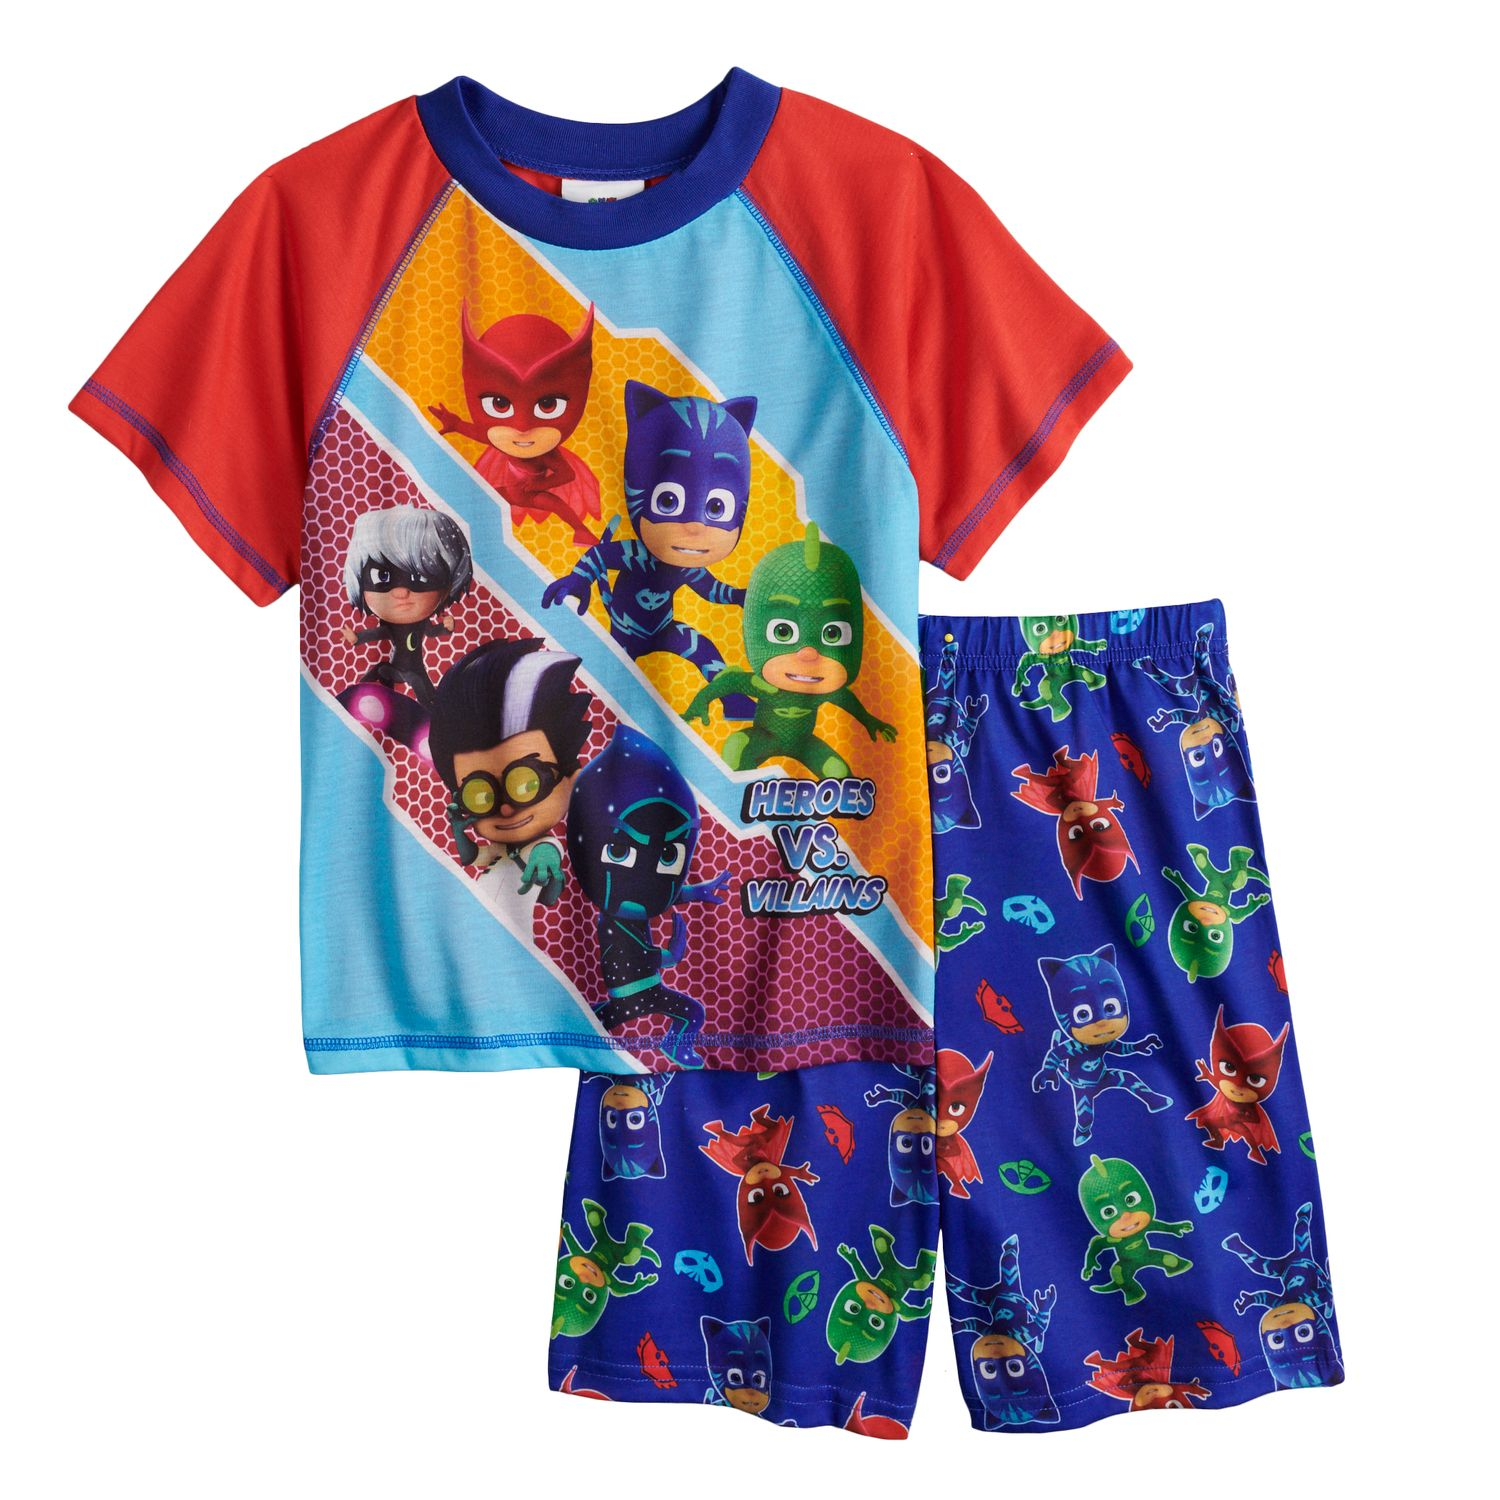 Boys 4 10 PJ Masks 2 Piece Pajama Set